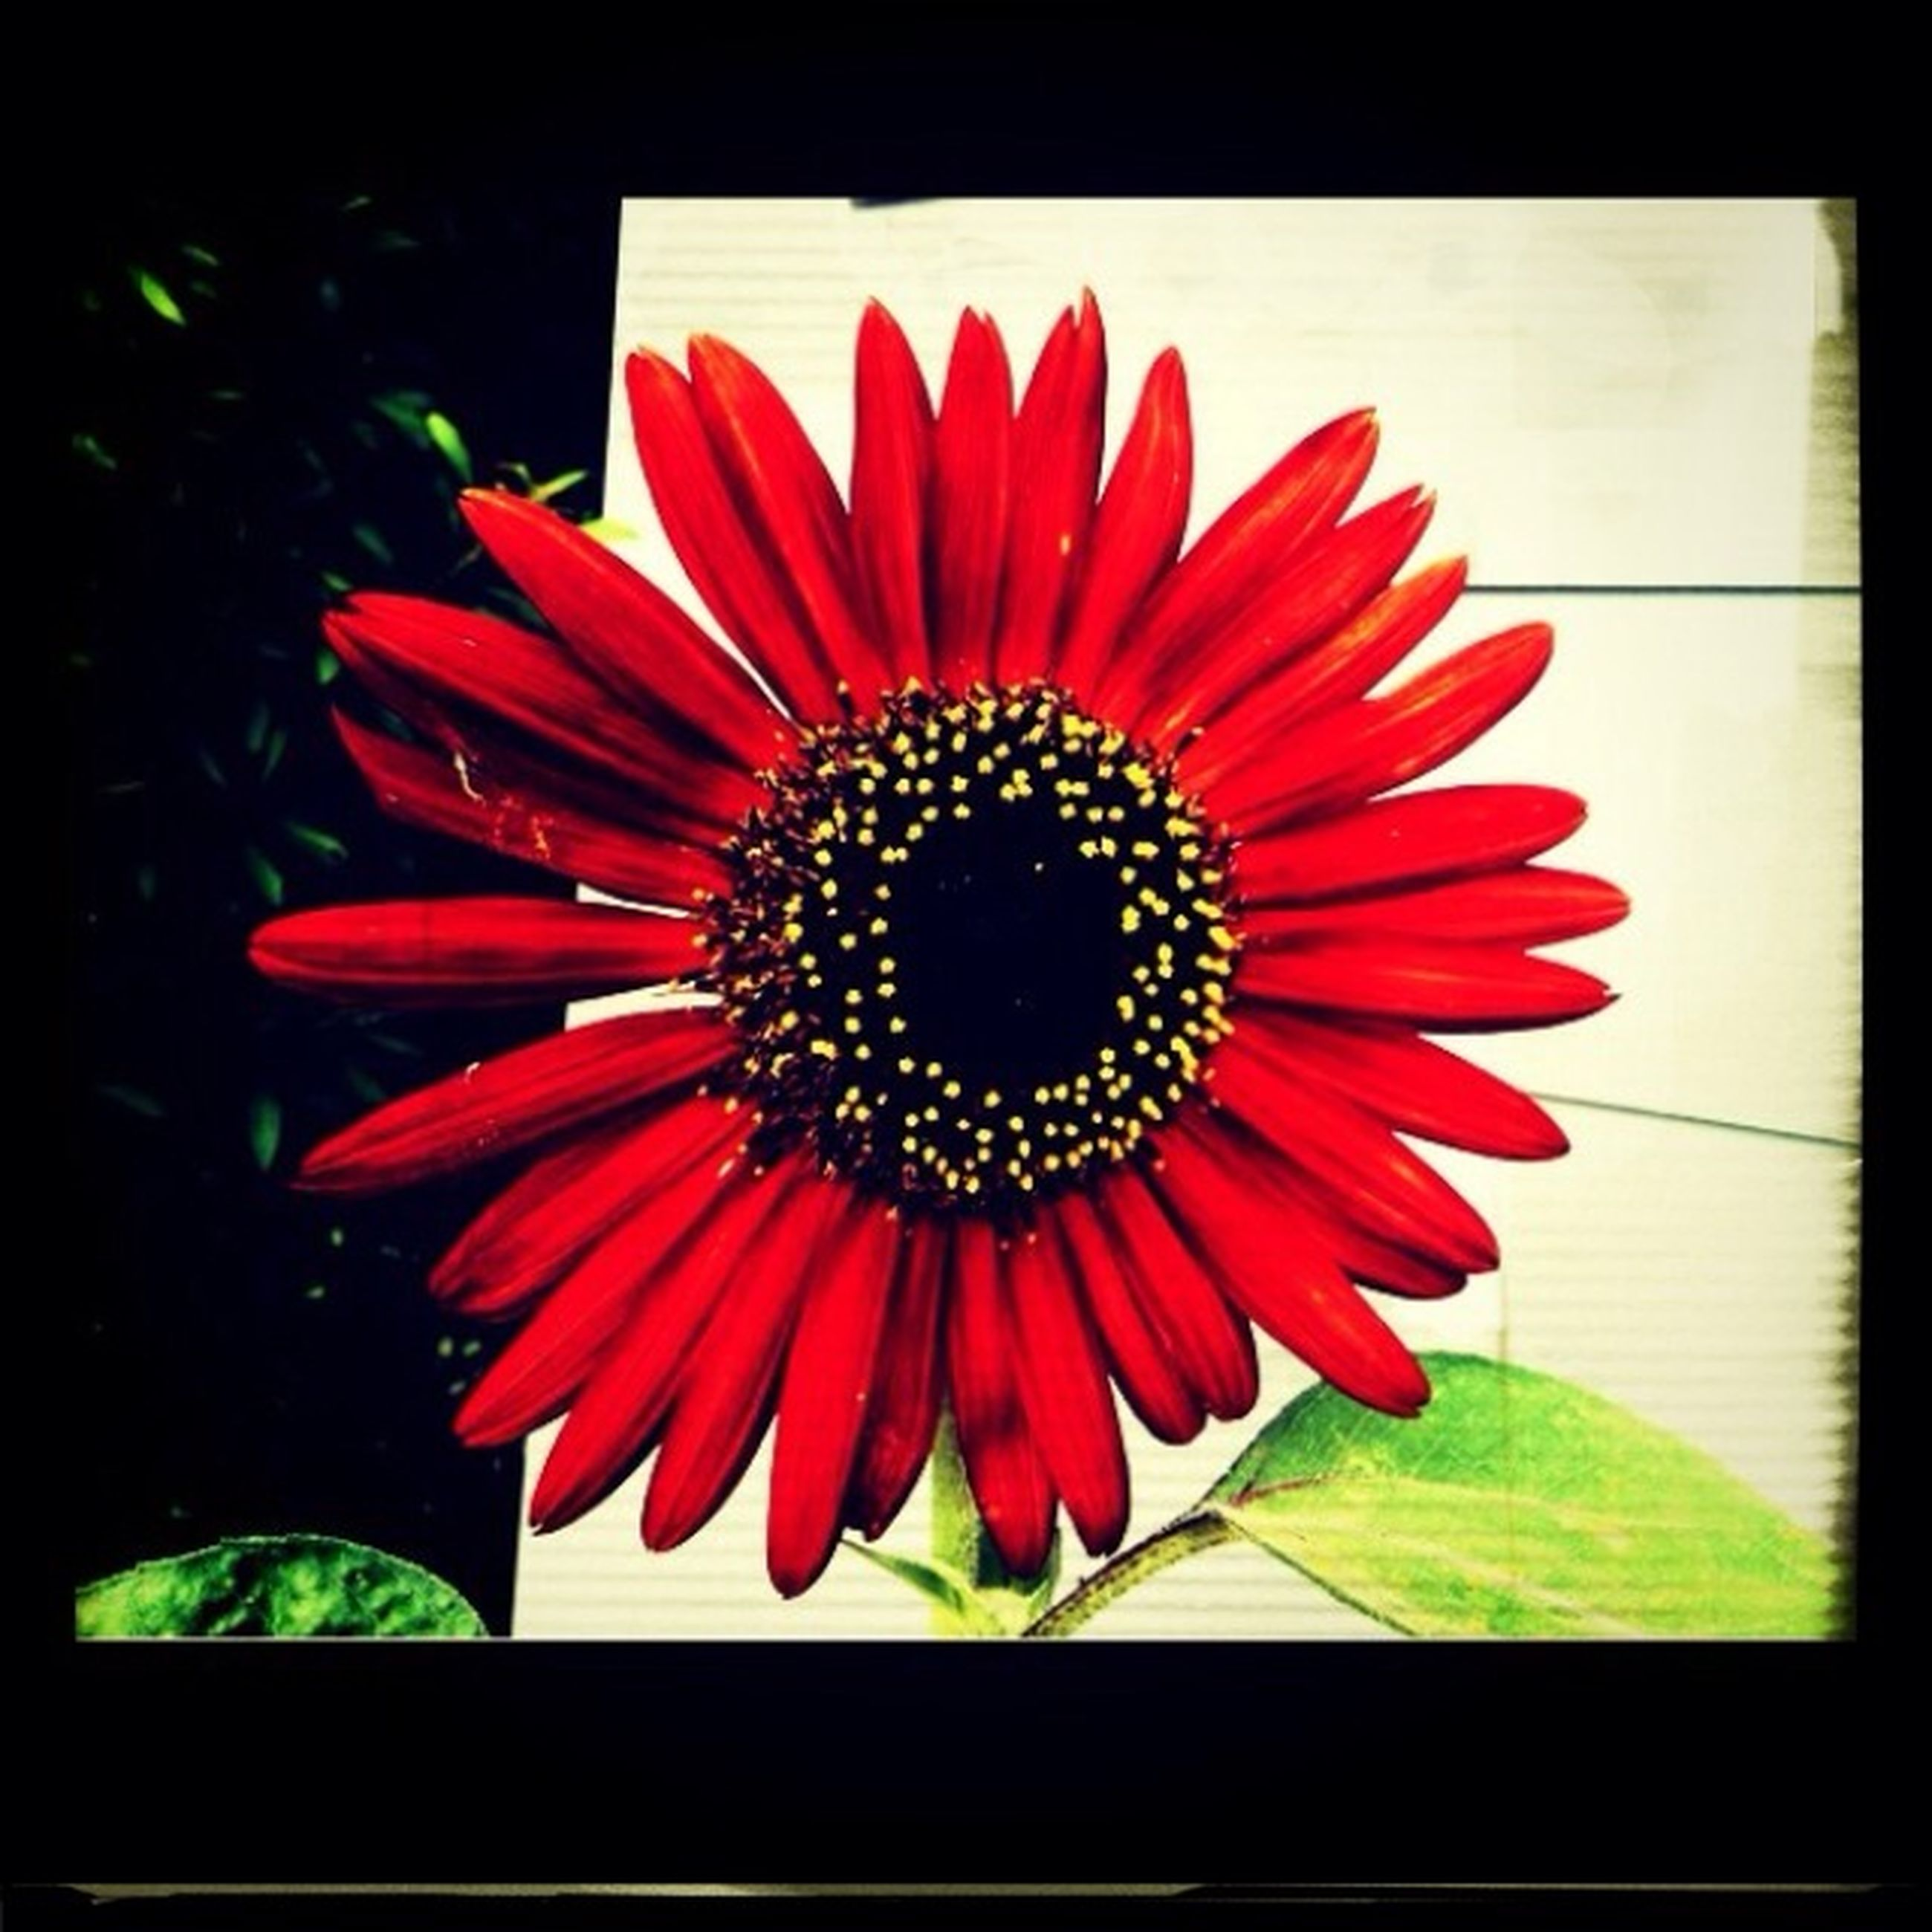 flower, petal, transfer print, flower head, freshness, red, fragility, auto post production filter, growth, pollen, beauty in nature, close-up, plant, blooming, single flower, nature, indoors, no people, leaf, in bloom